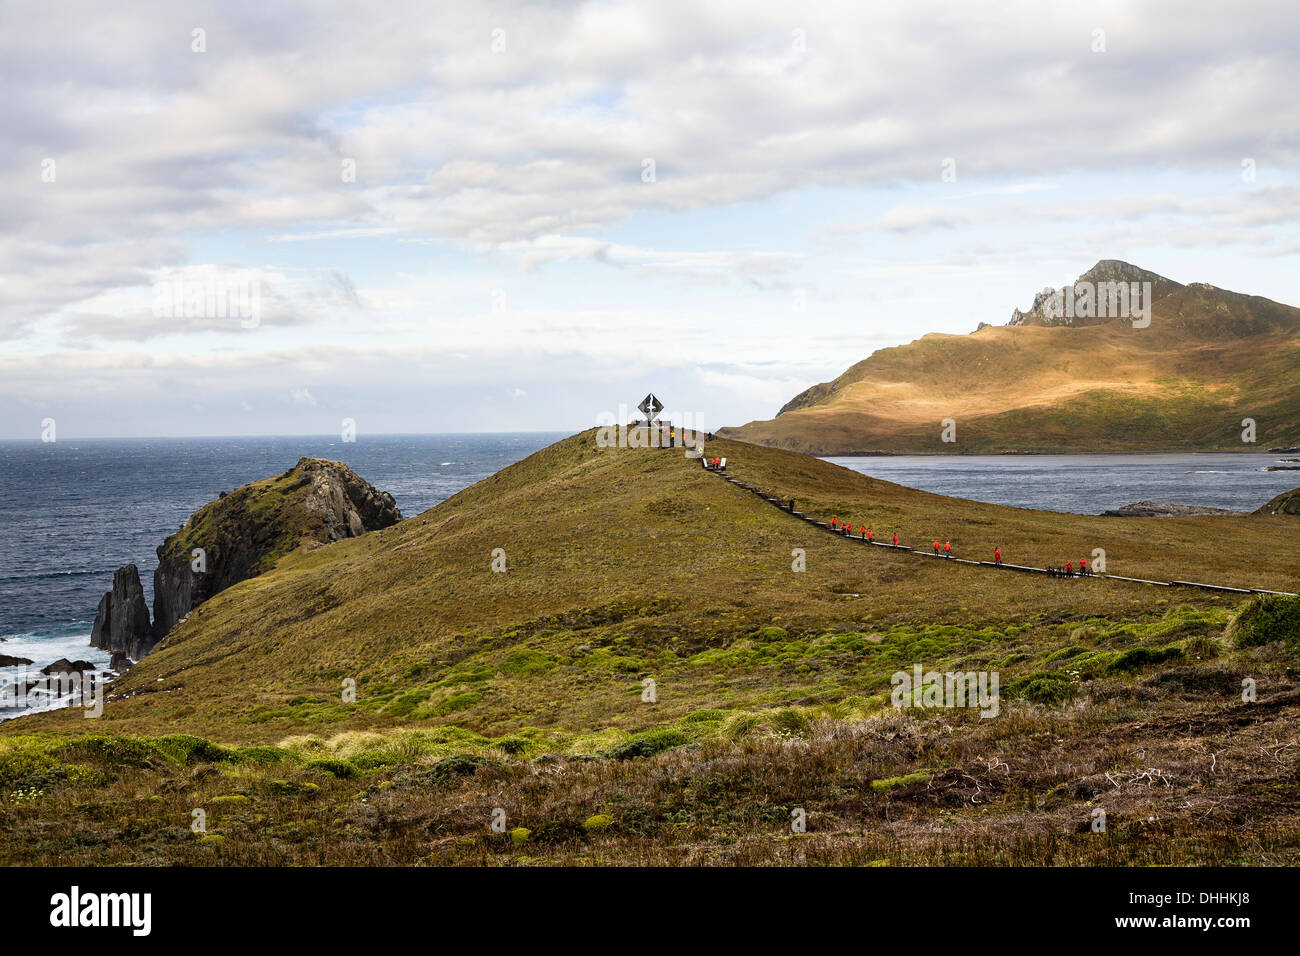 Memorial for castaways at Cape Horn, Cape Horn National Park, Cape Horn Island, Terra del Fuego, Patagonia, Chile, South America - Stock Image